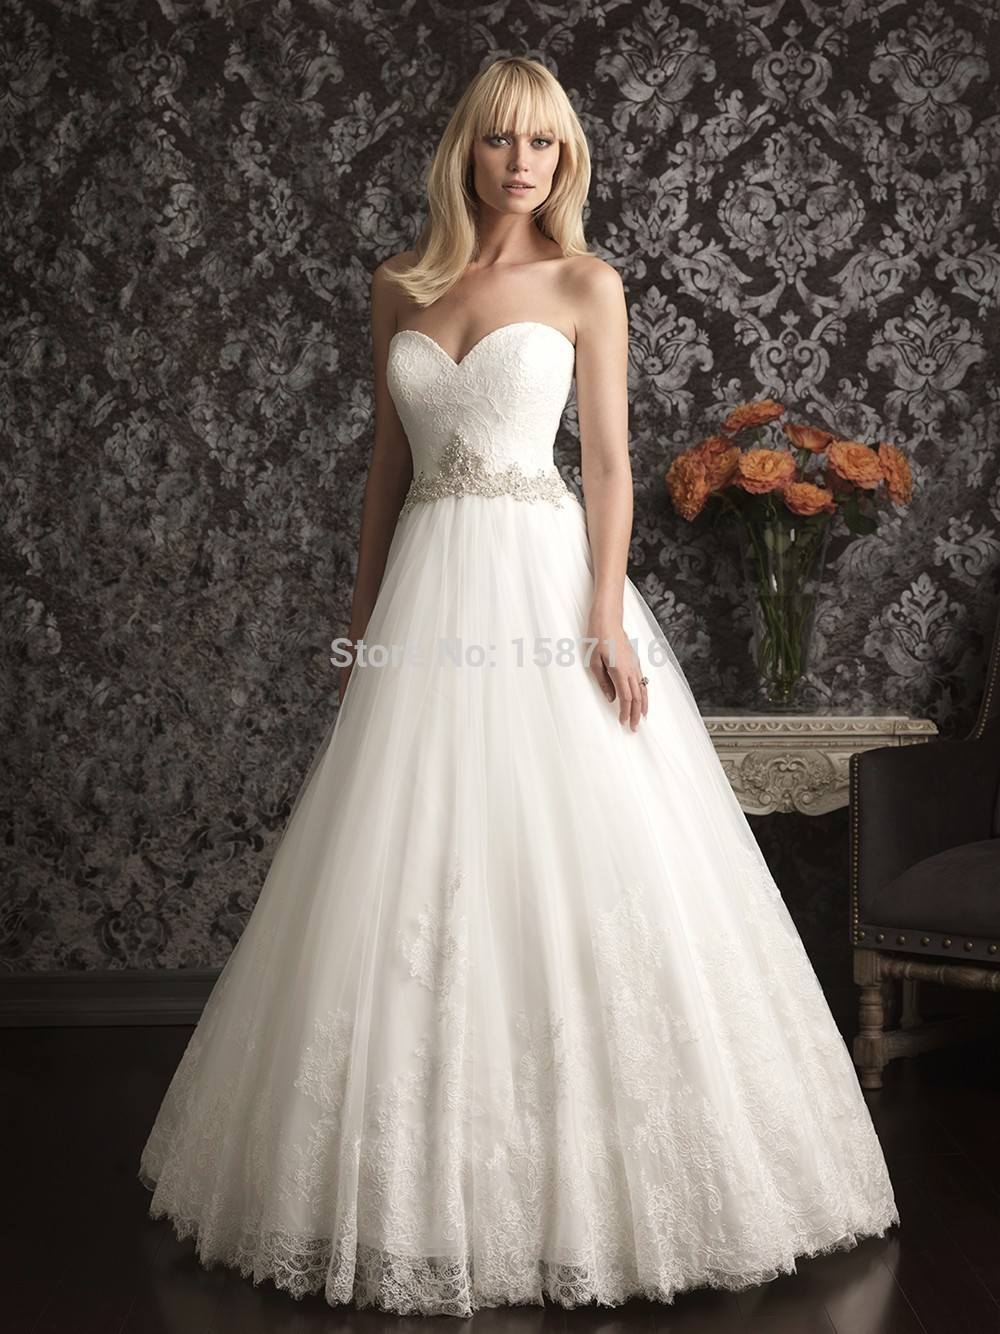 2015 elegant wedding dresses custom made sweetheart for Sweetheart halter wedding dress